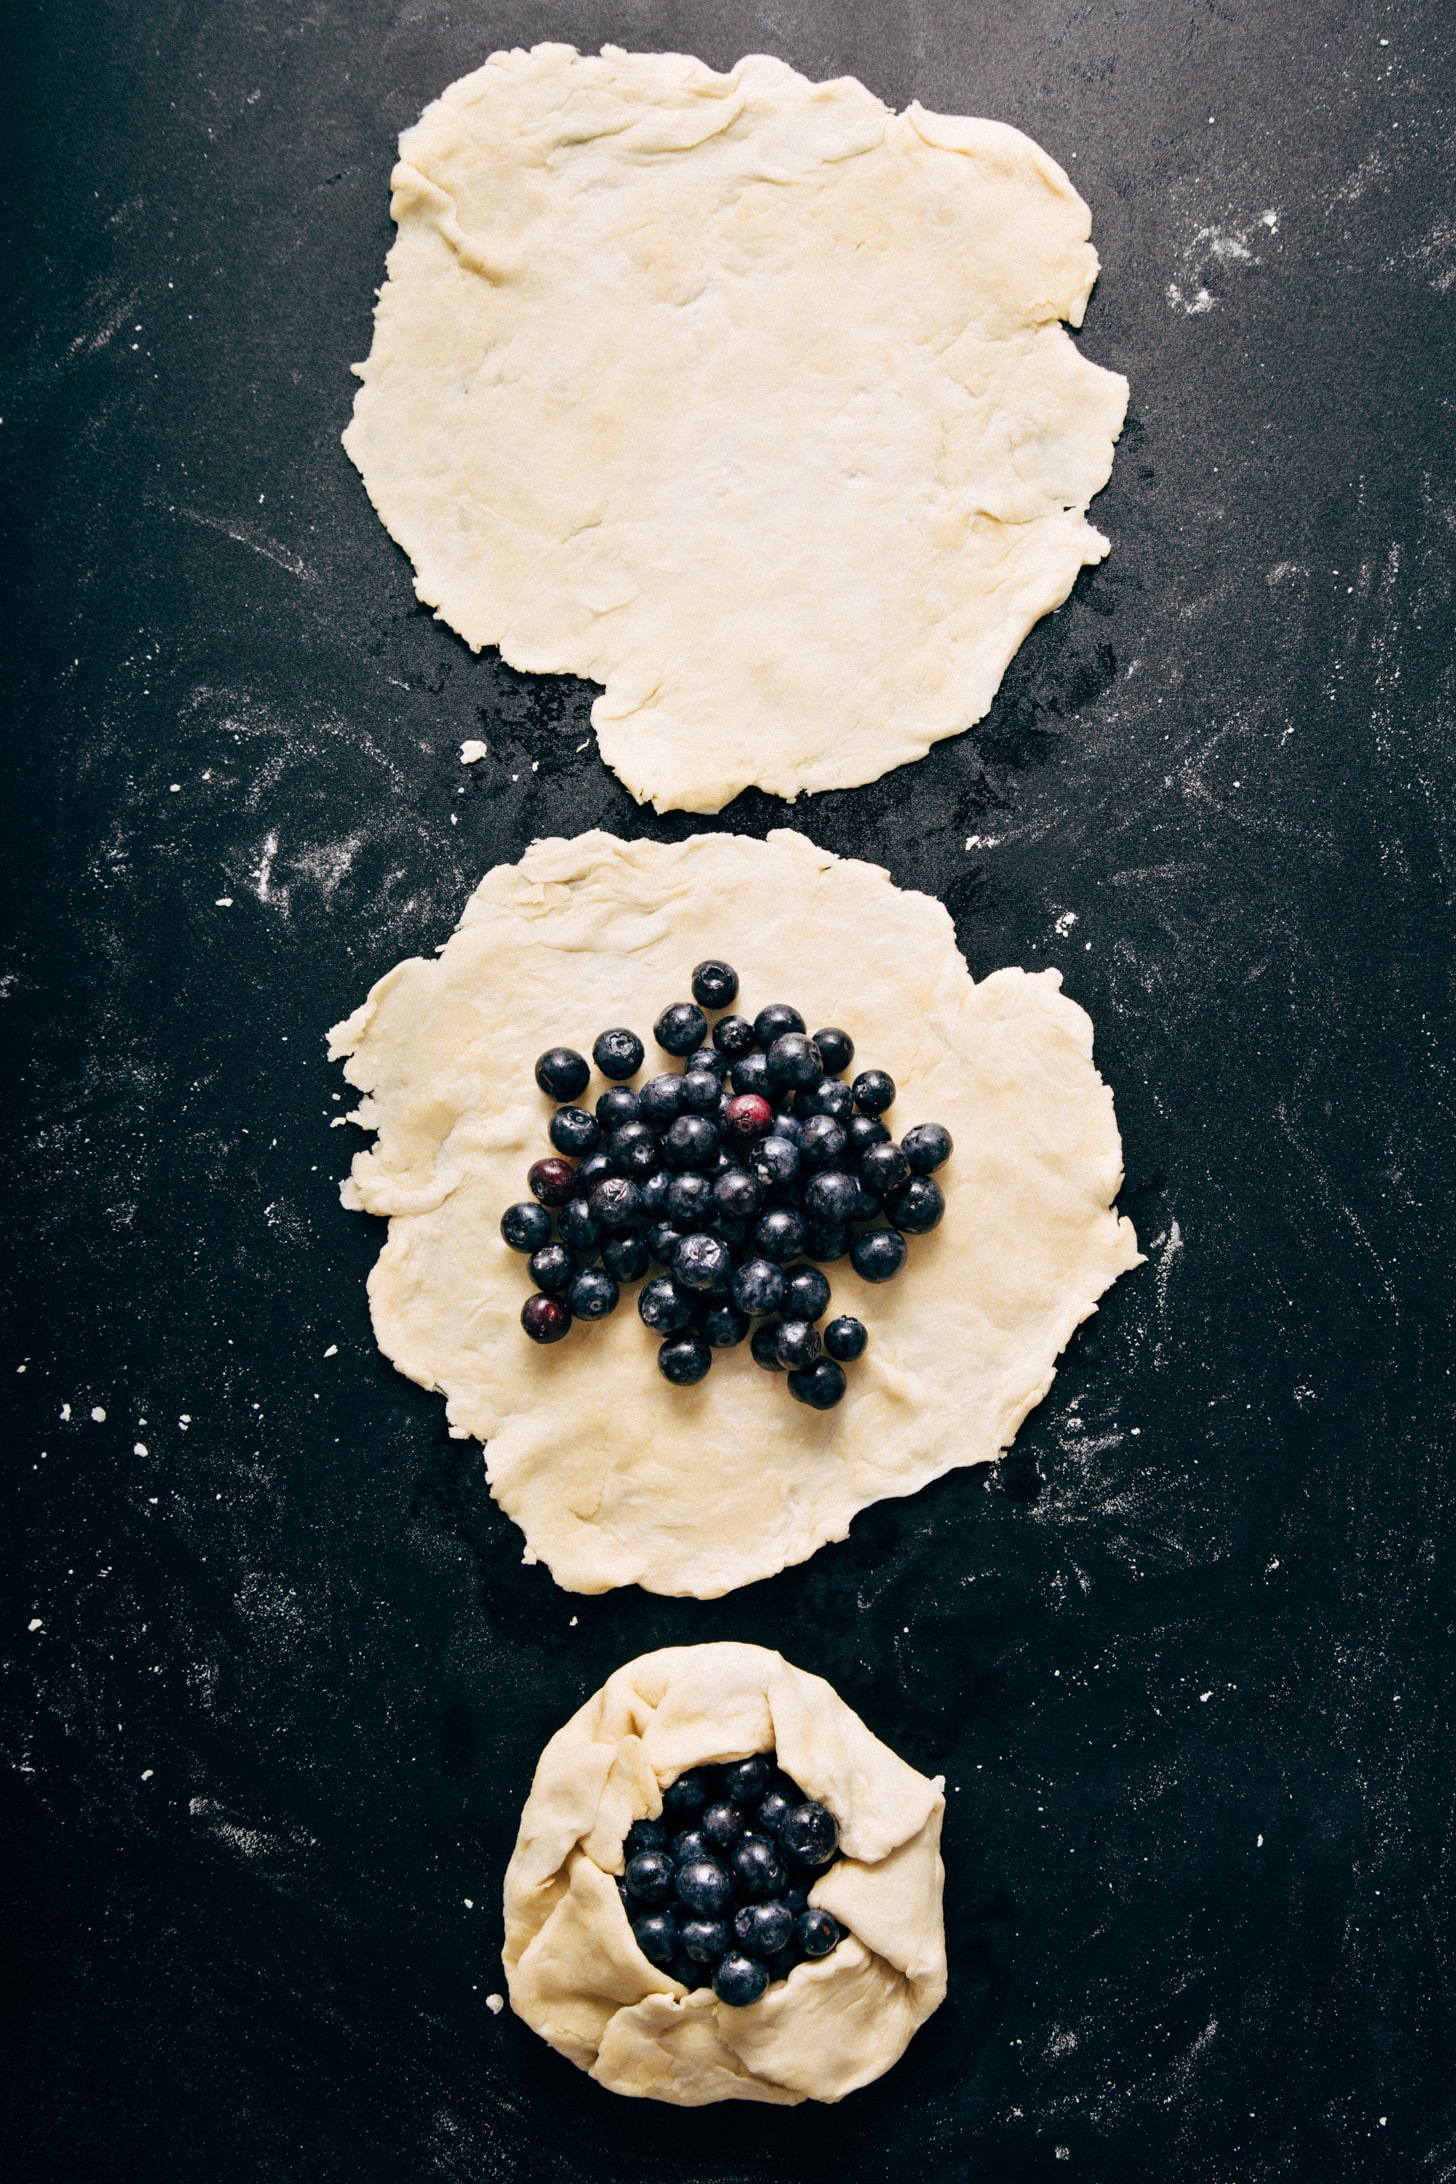 Mini Blueberry Galettes in various stages of the preparation process